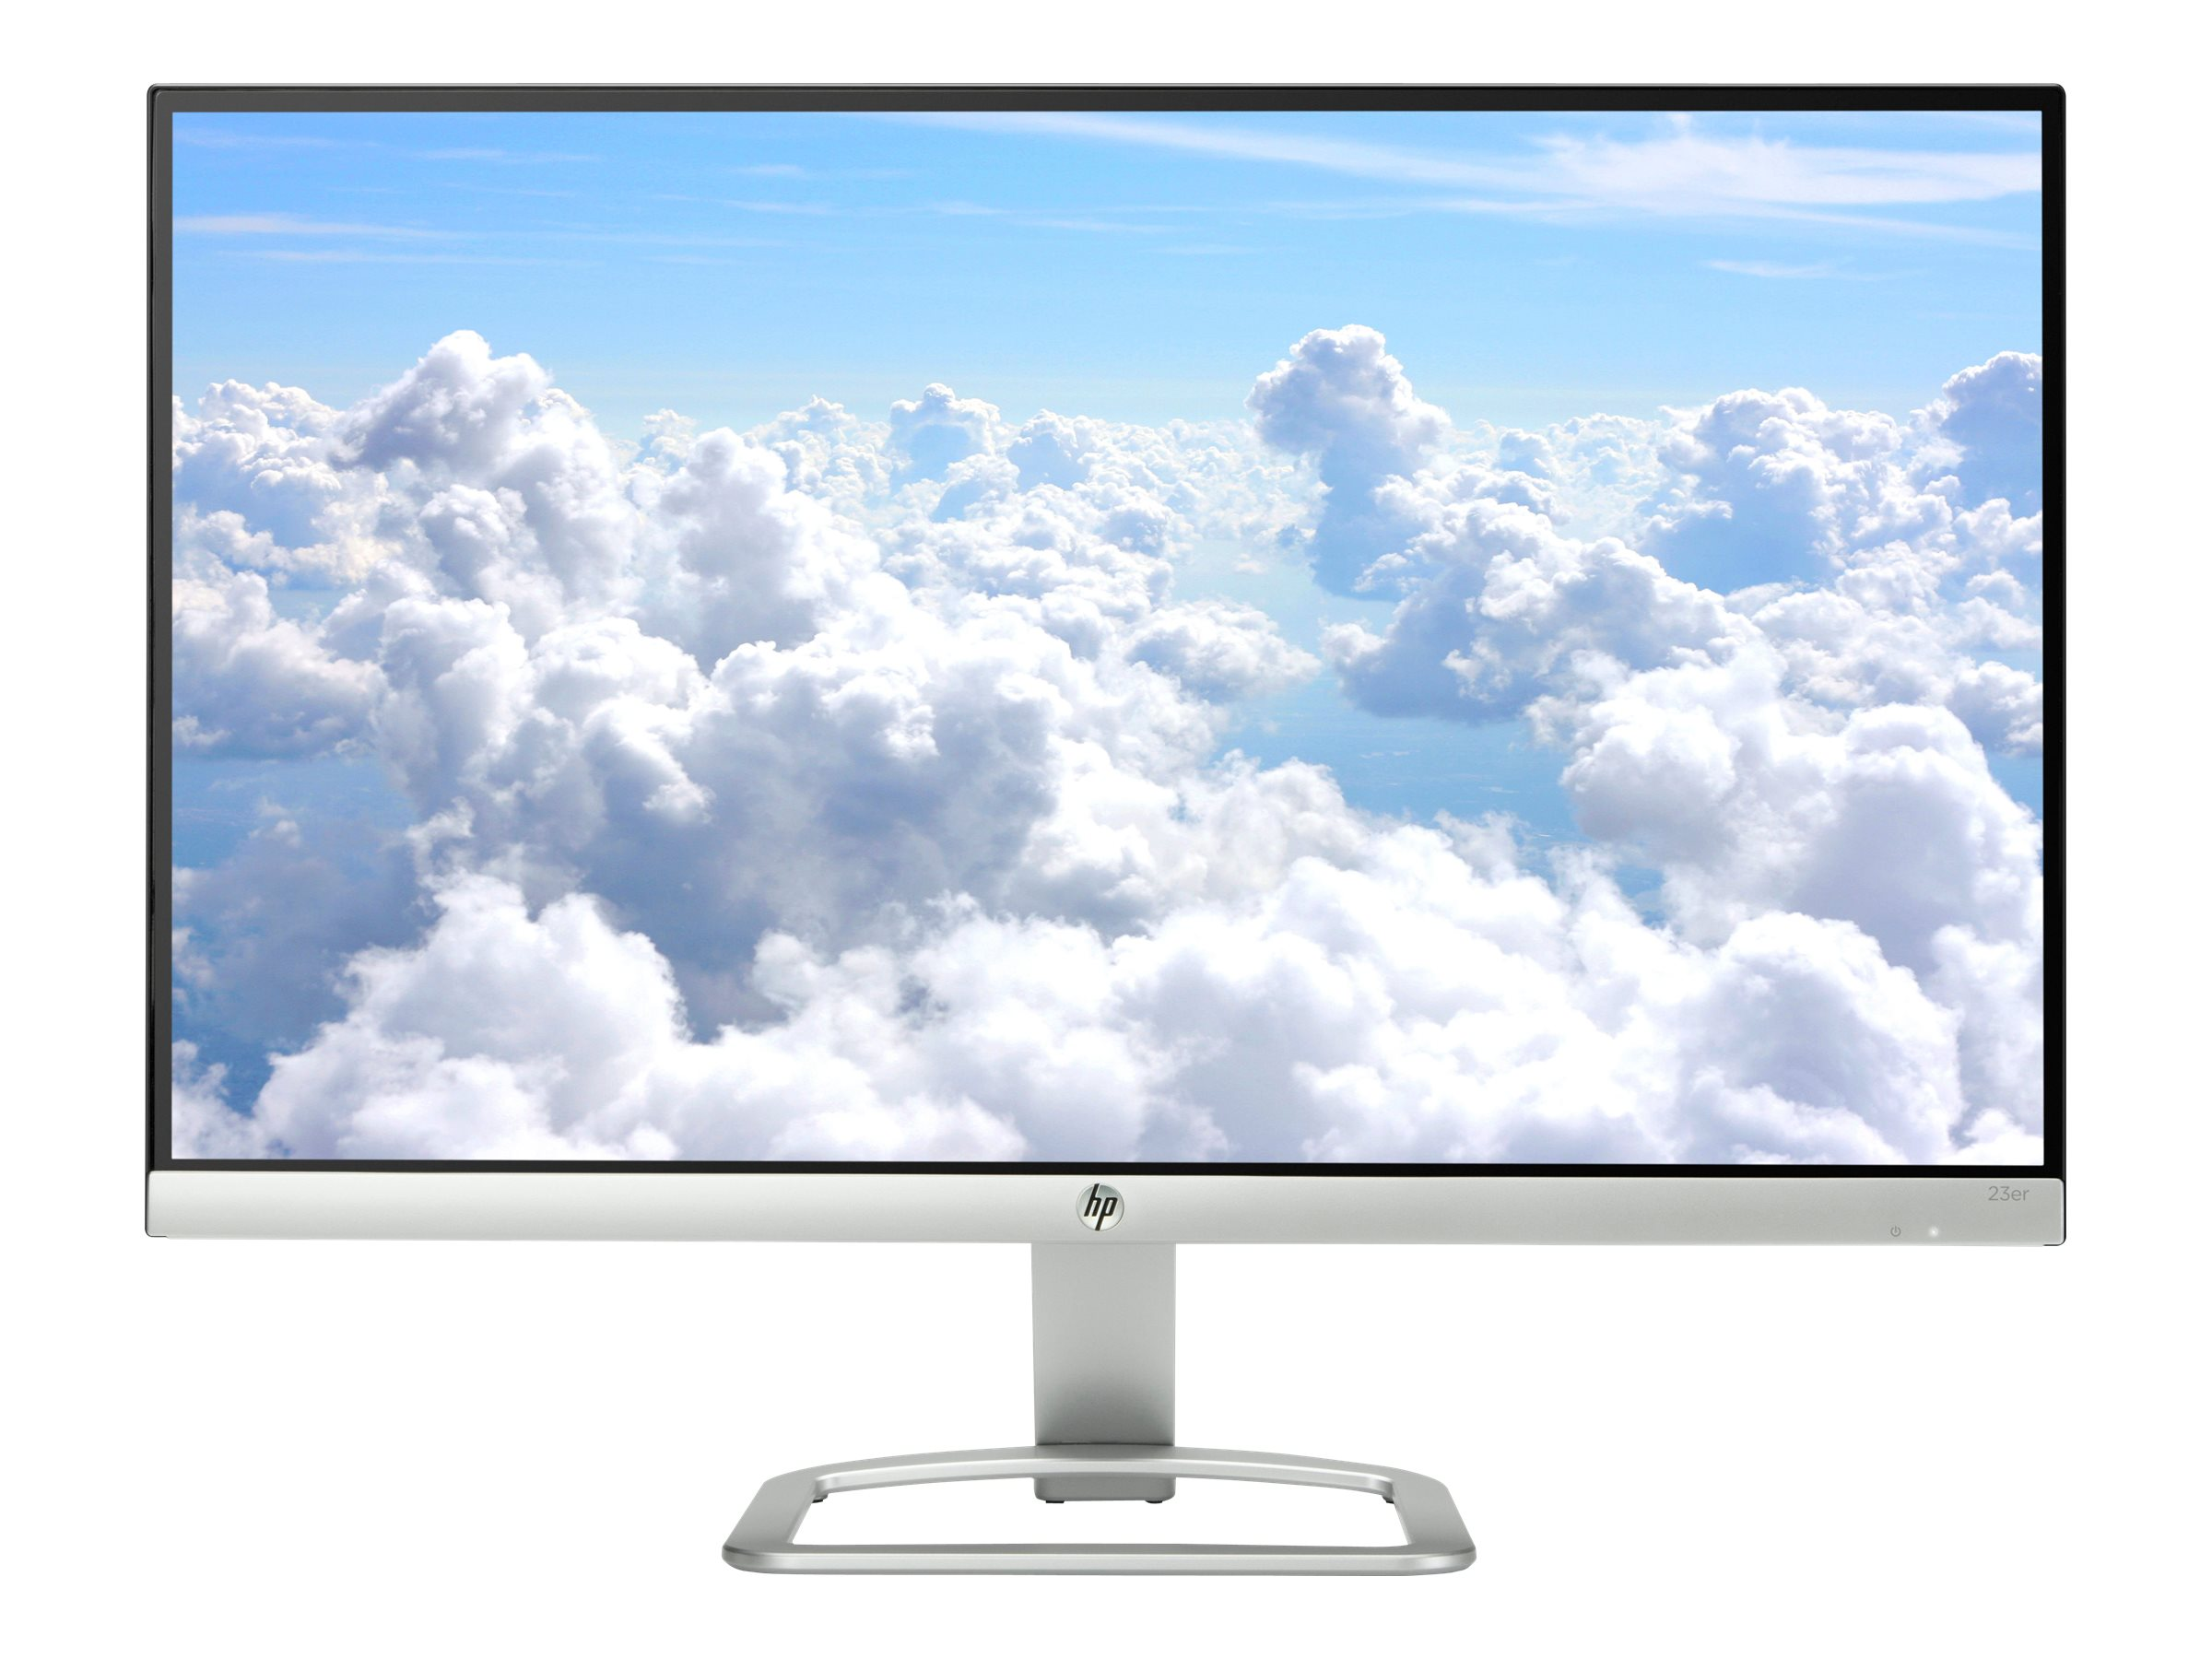 """Image for Hp 23Er - Led Monitor - Full Hd (1080P) - 23"""" from Circuit City"""